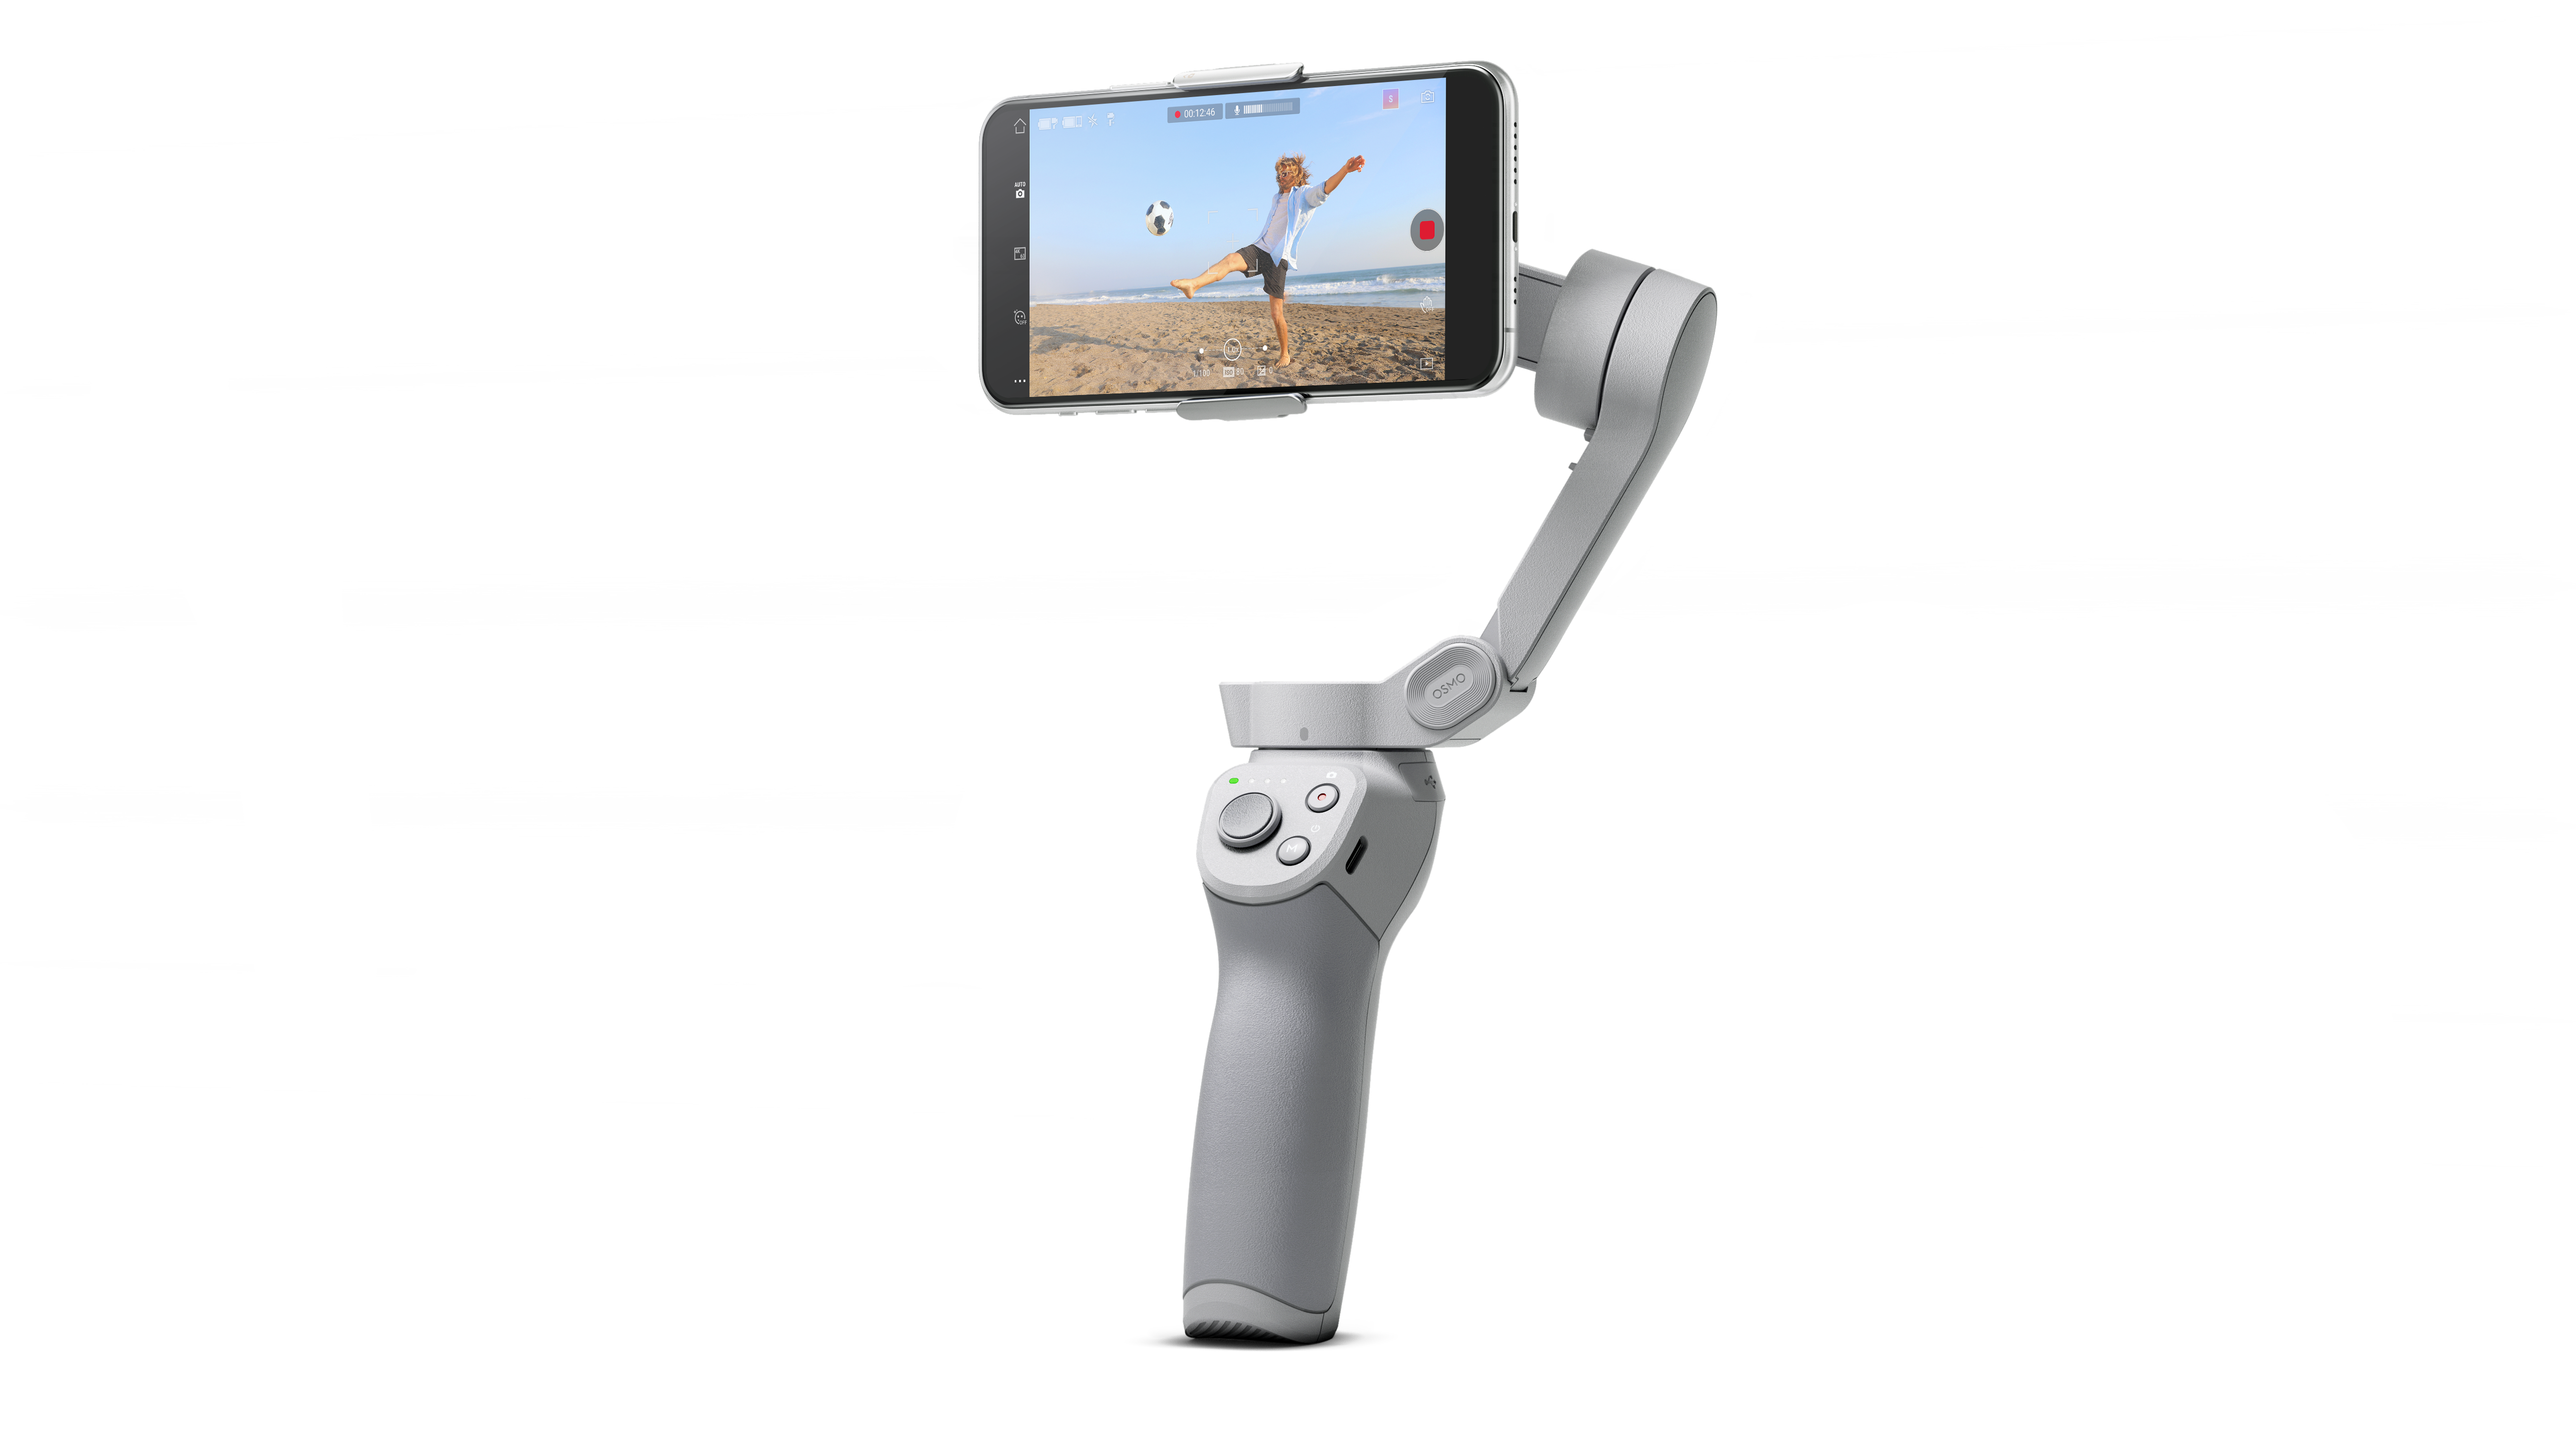 DJI Osmo Mobile 4 leaks